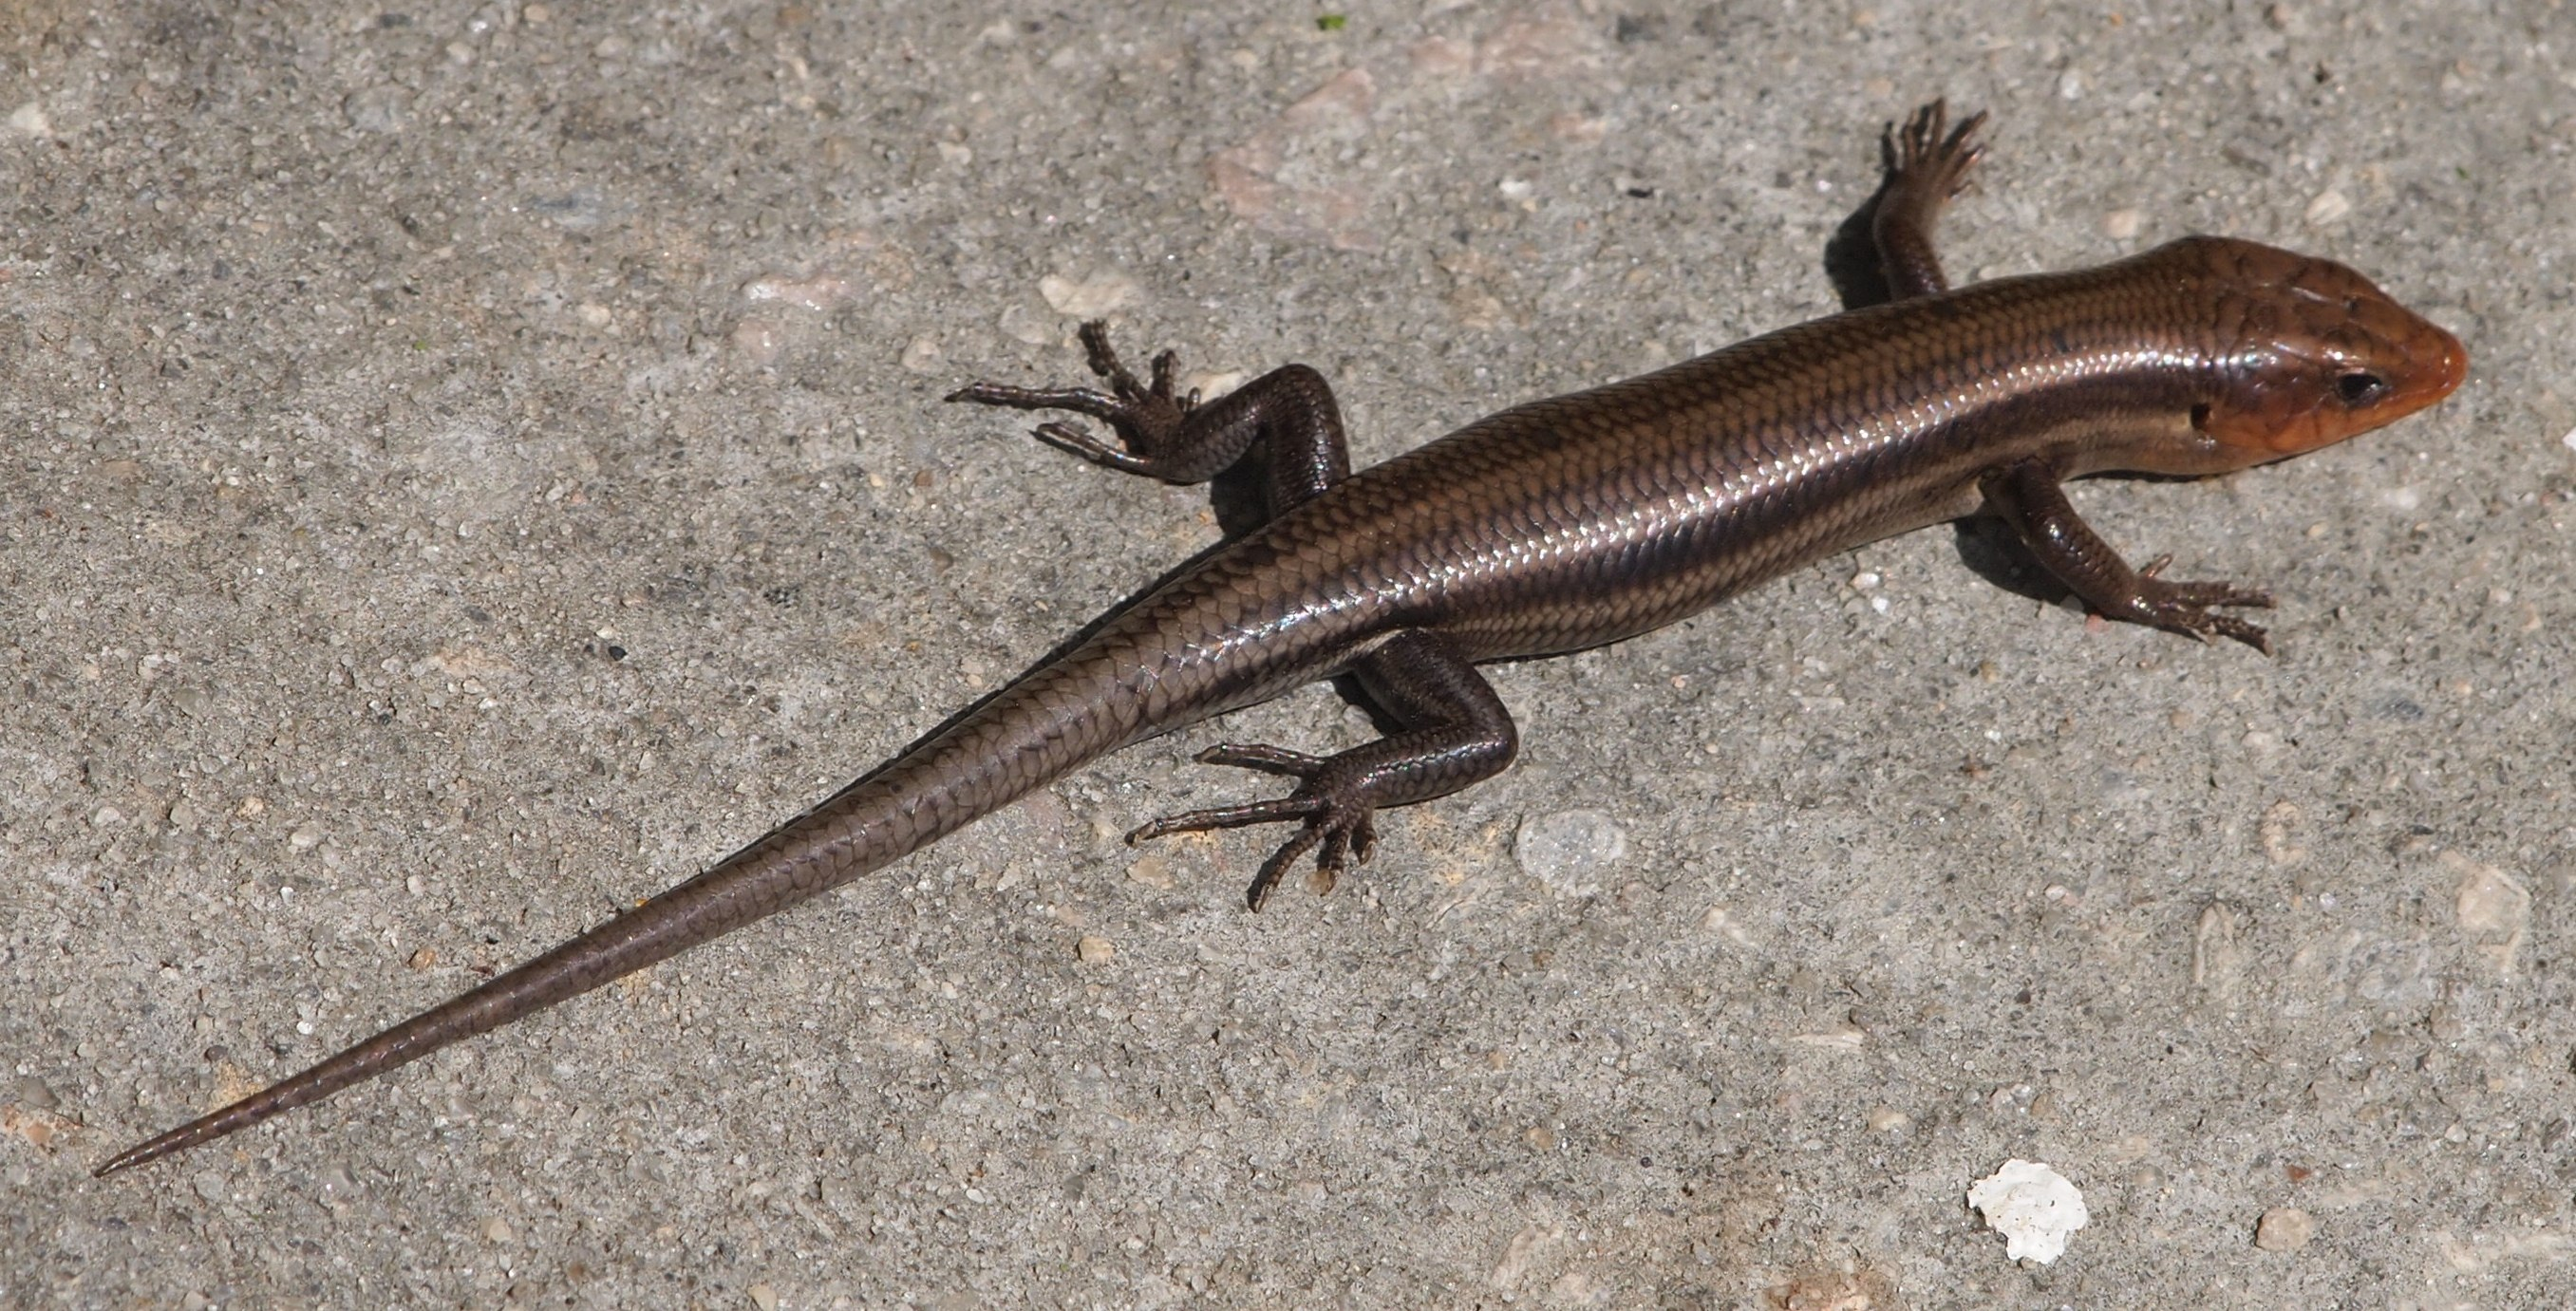 Common Five-lined Skink (Eumeces inexpectatus, family Scincidae ...